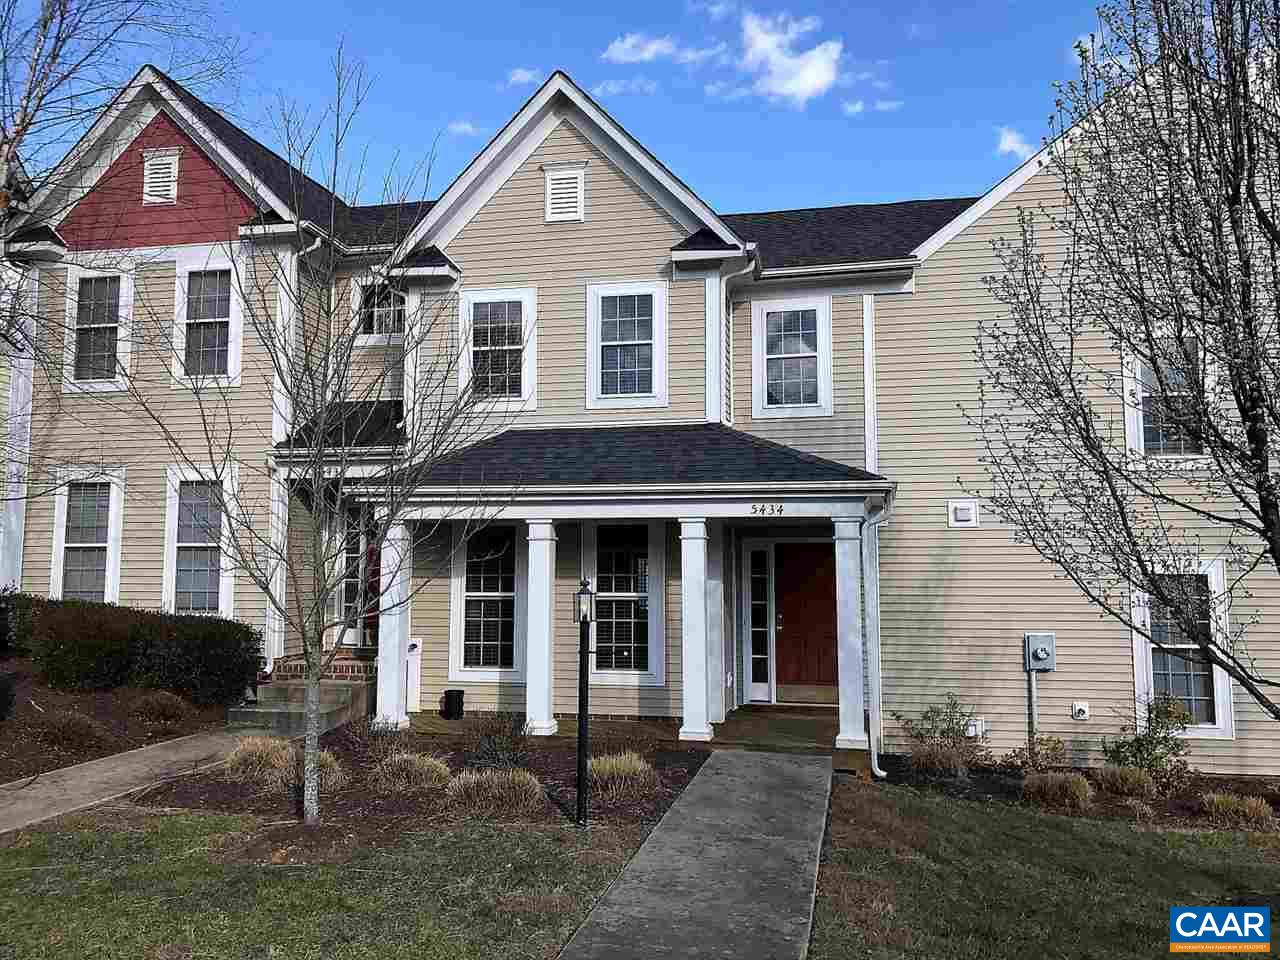 Single Family Home for Sale at 5434 HILL TOP Street Crozet, Virginia 22932 United States